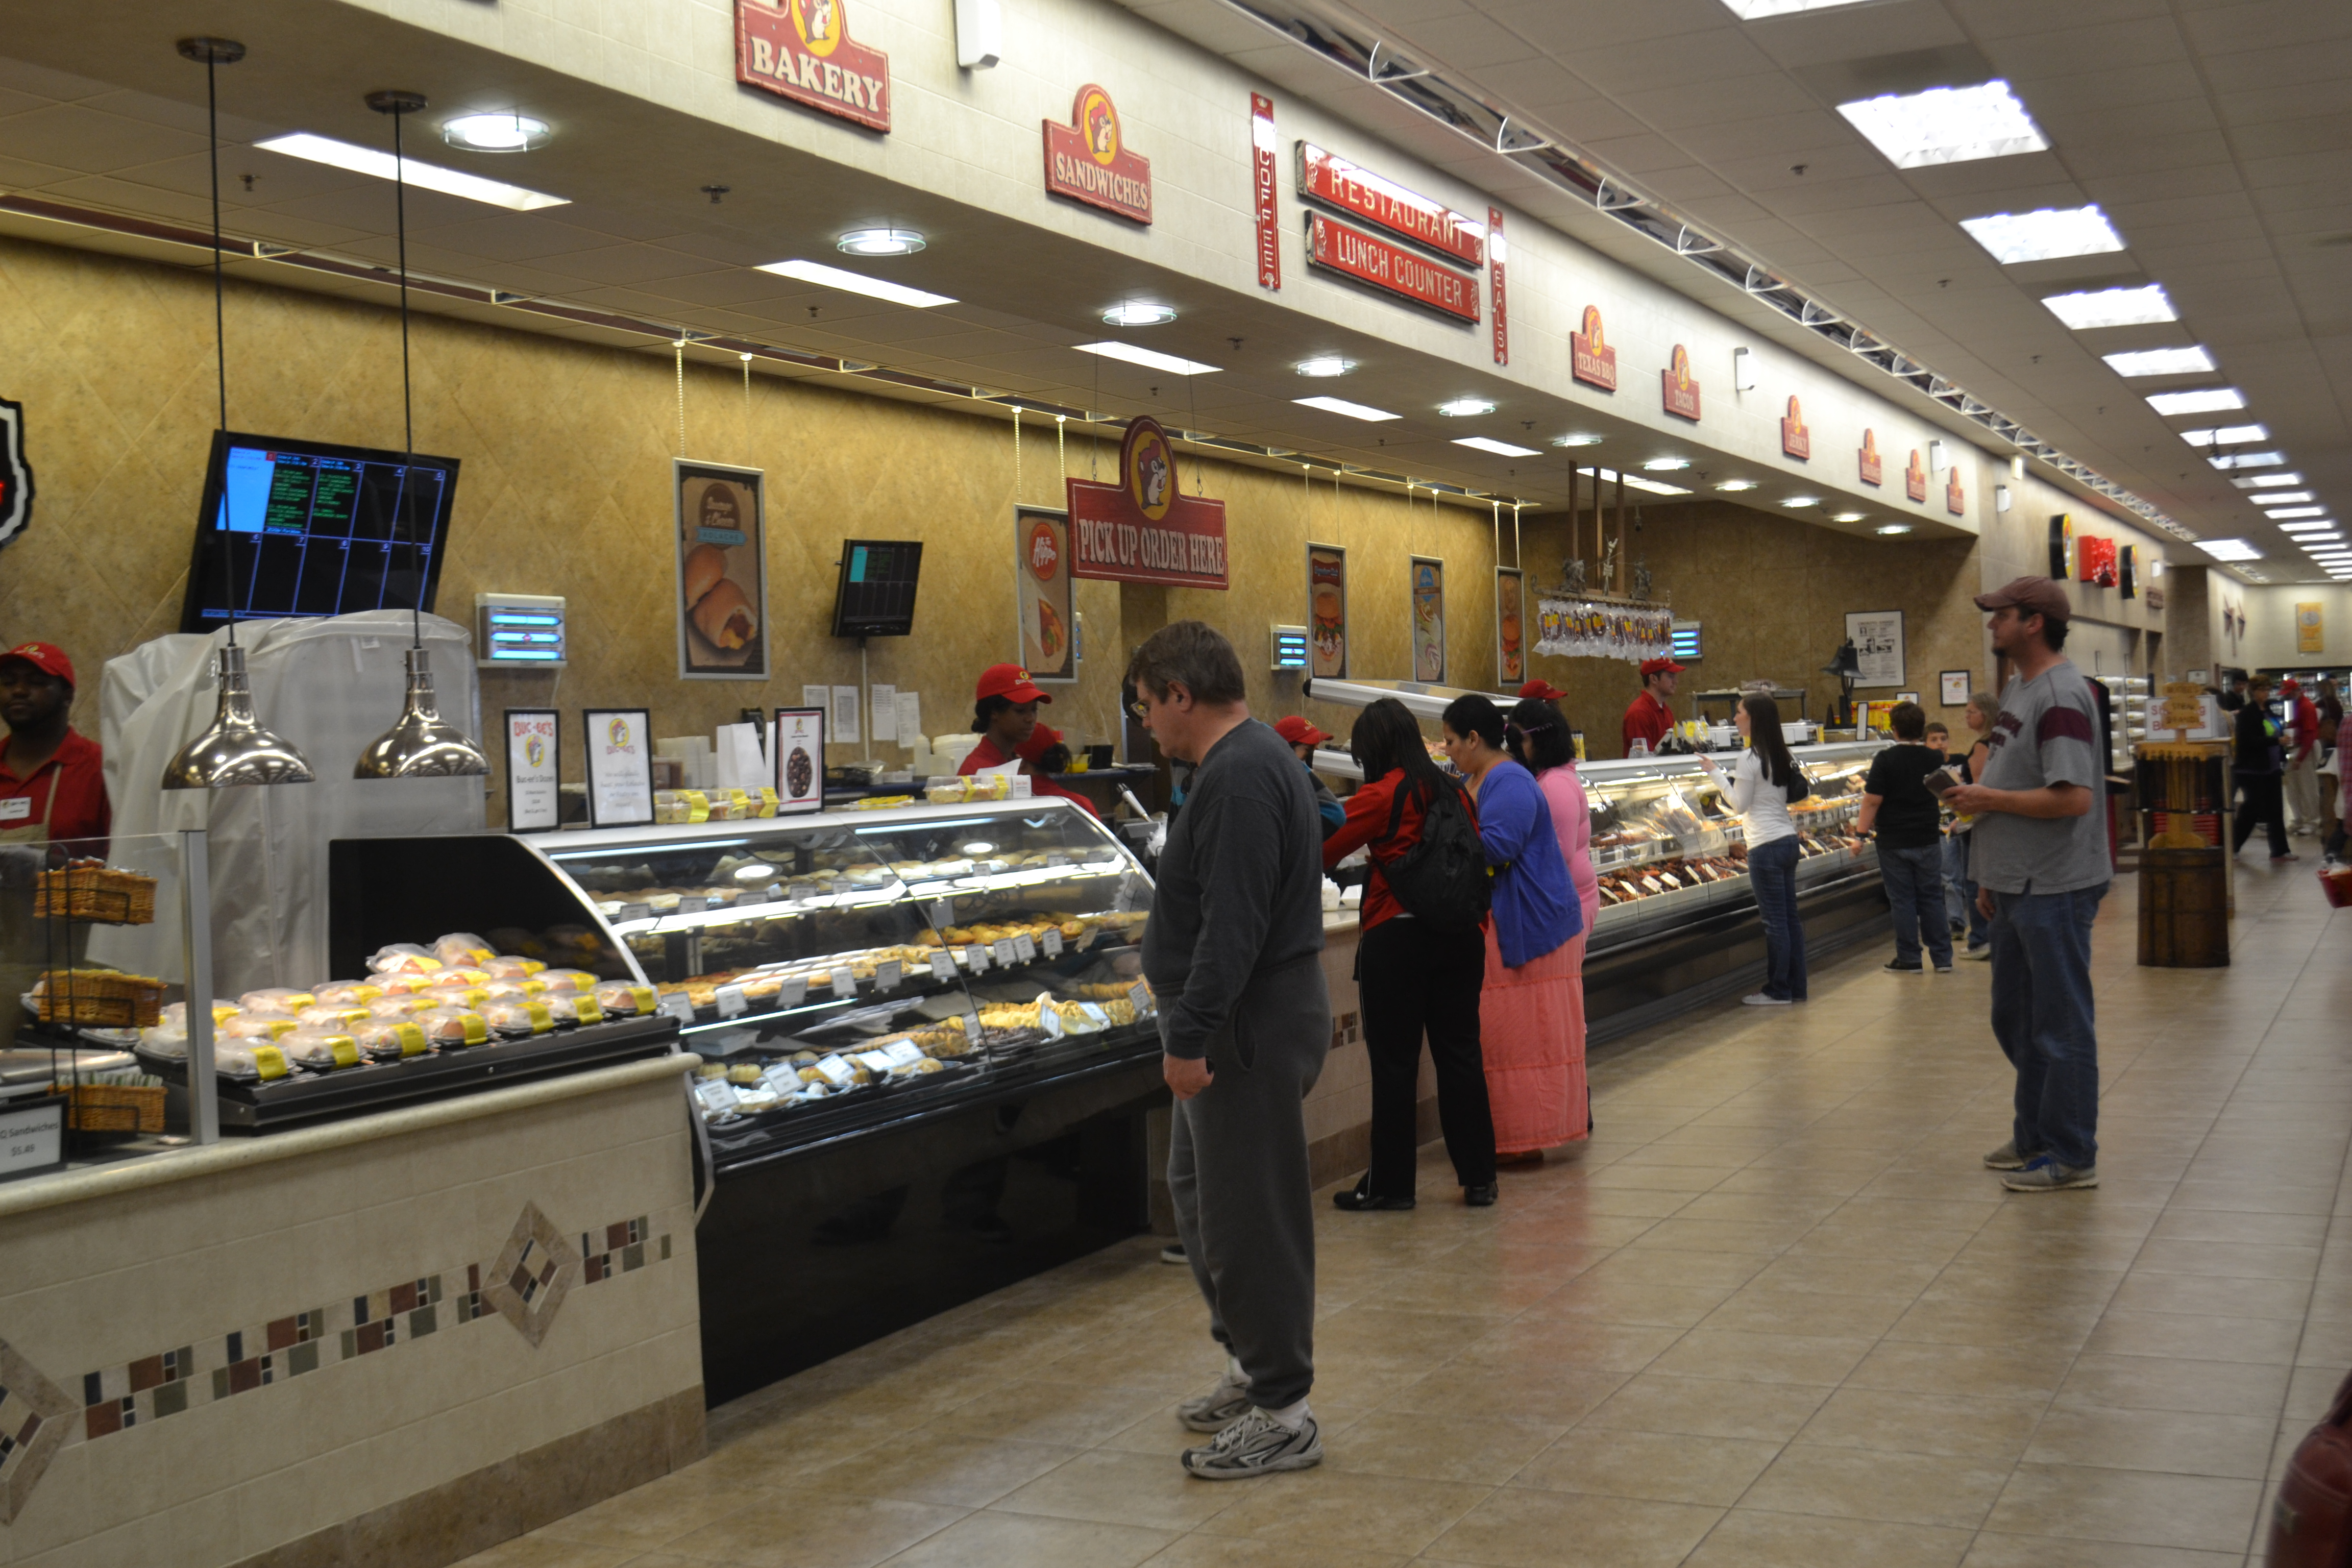 Inside Buc ee s 50 000 foot convenience store you will find a deli You  actually. Buc Ees Convenience Stores